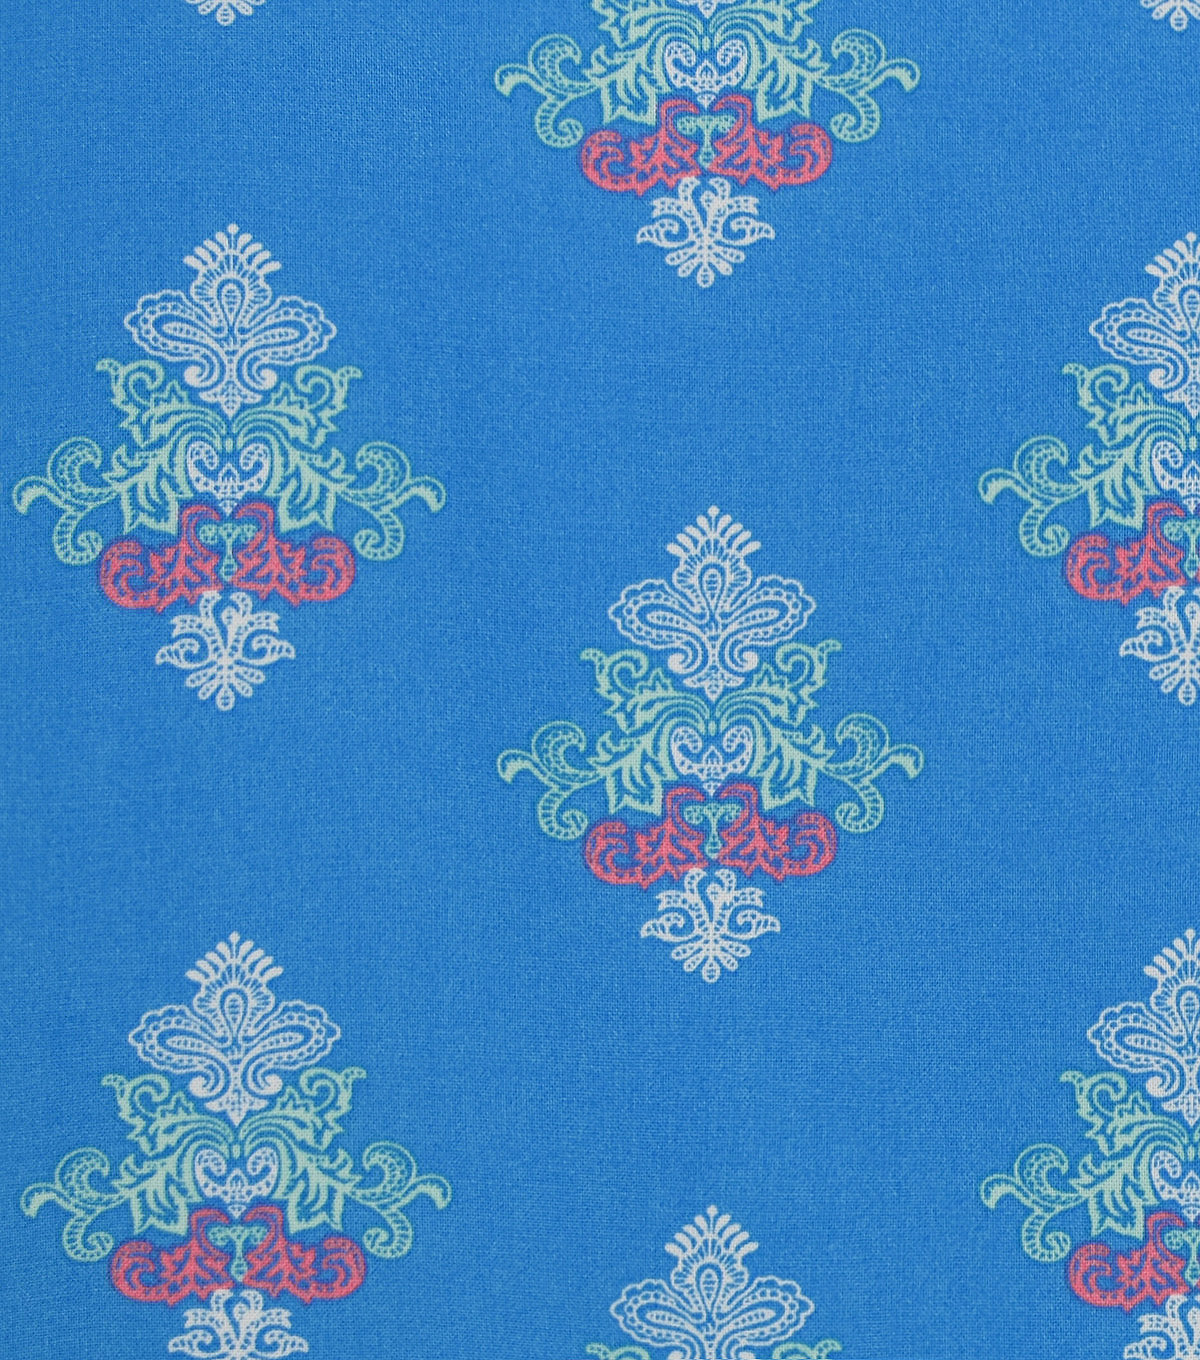 Doodles® Juvenile Rayon Apparel Fabric 53''-Boho Print on Blue